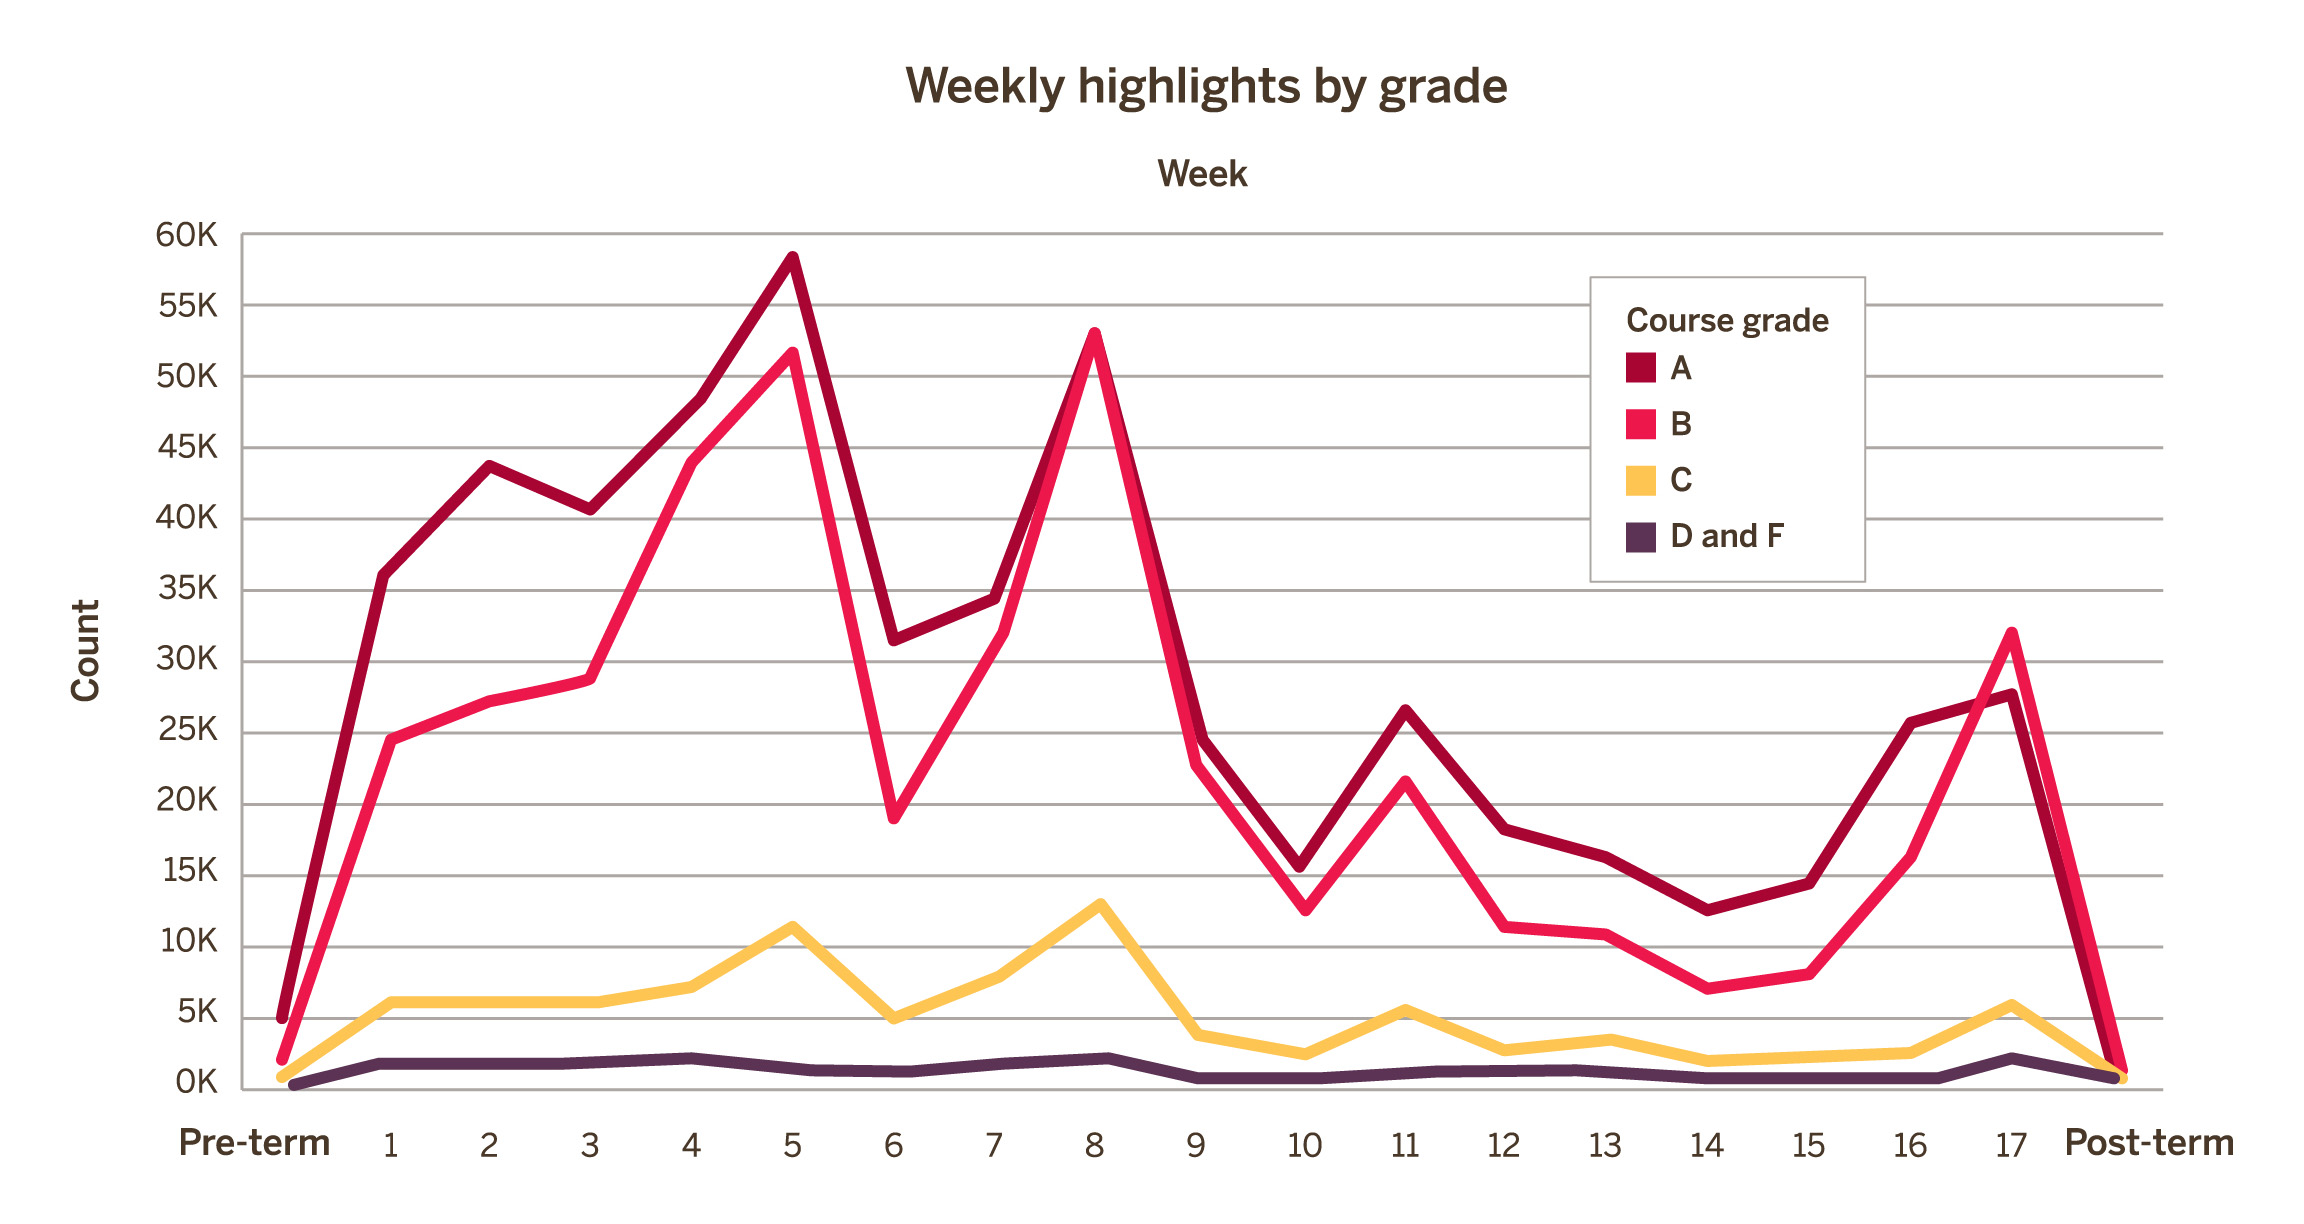 Weekly highlights by grade